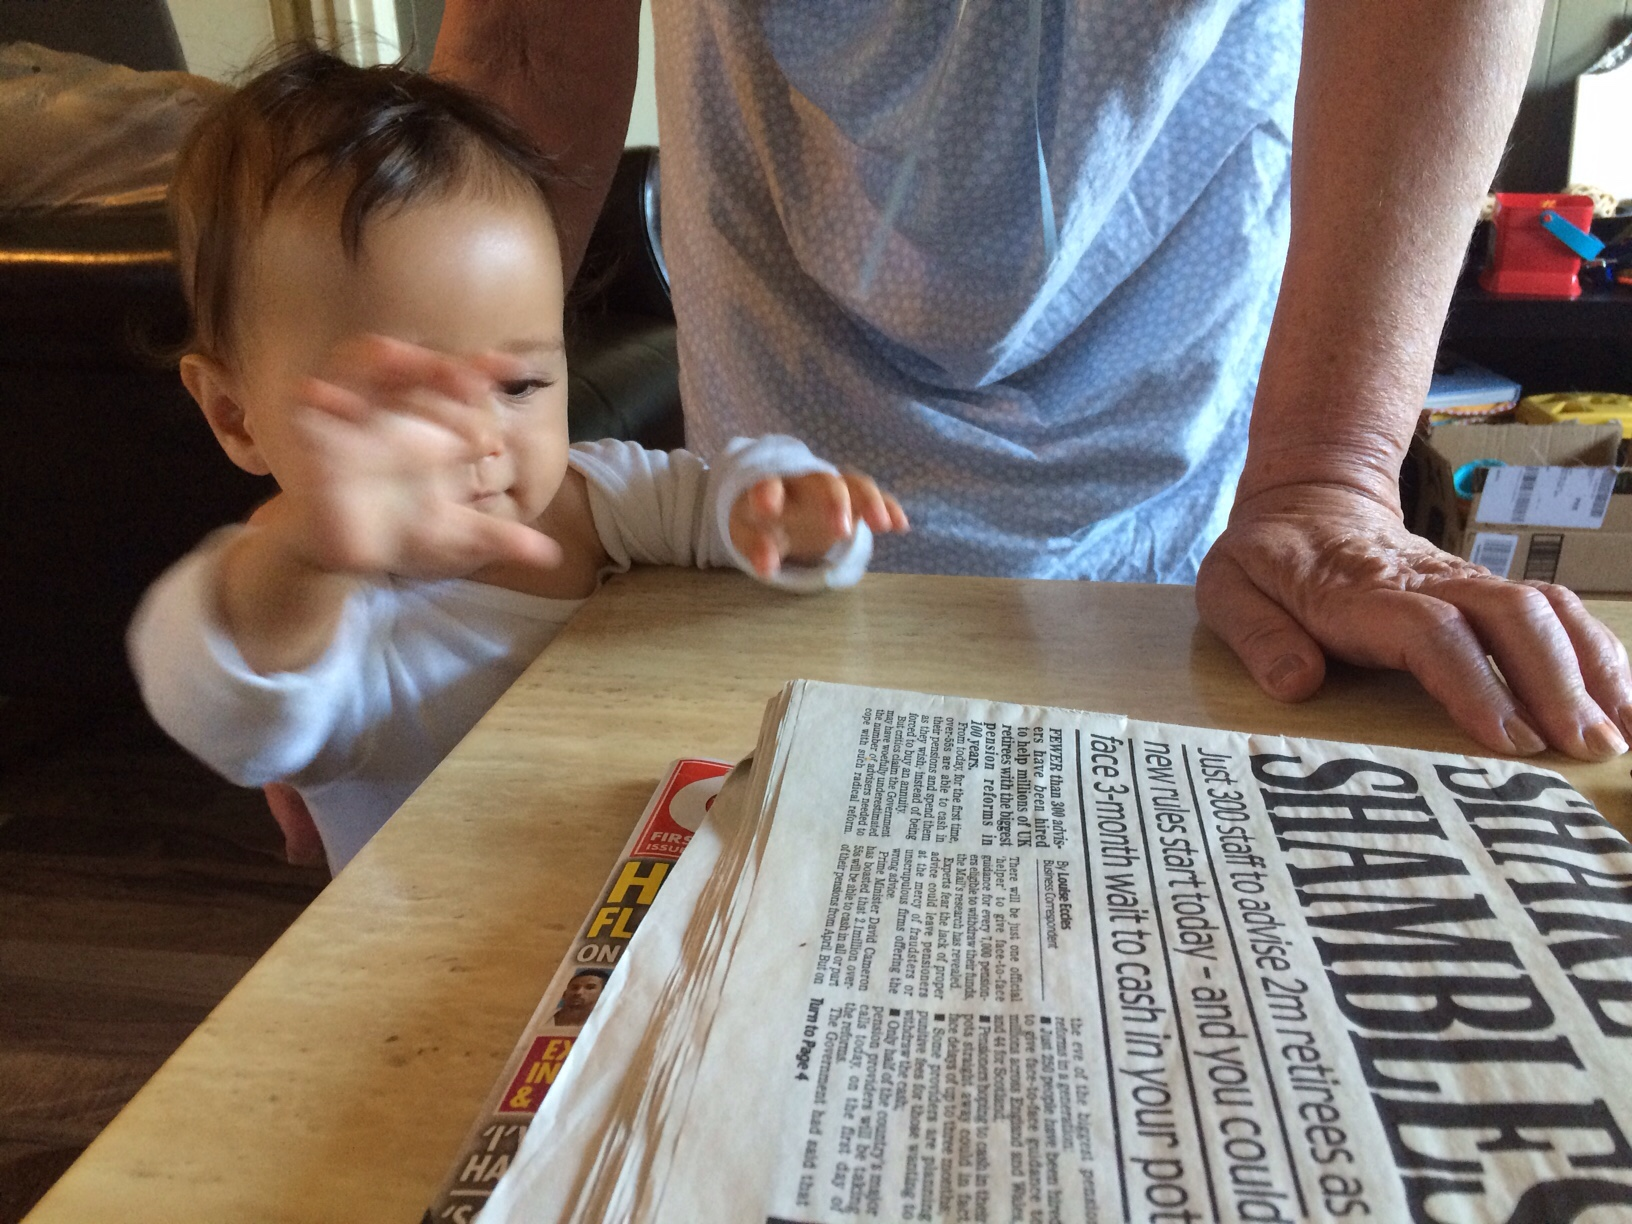 Grabbing newspapers